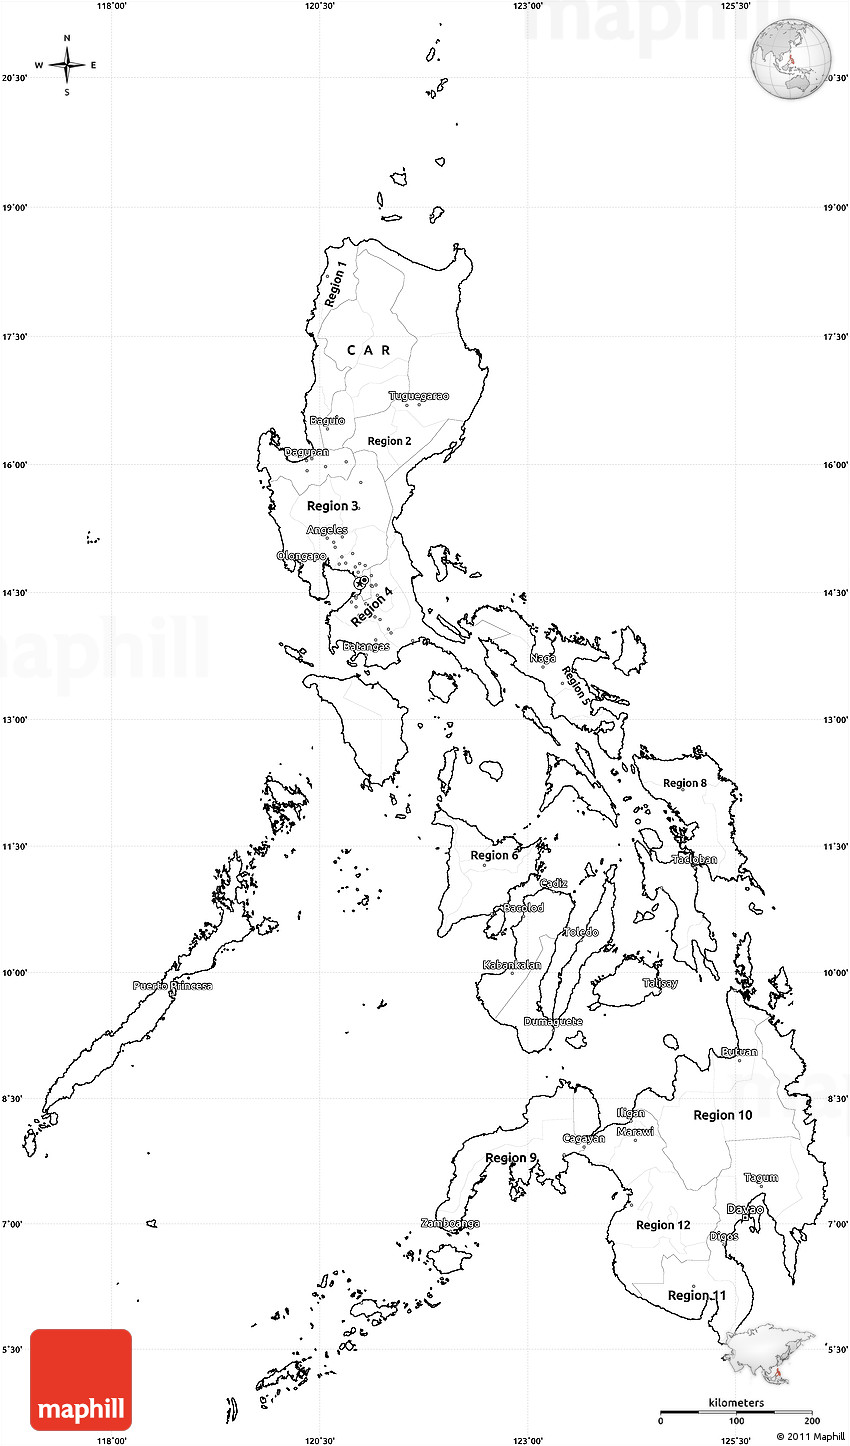 philippine map clipart black and white - photo #20